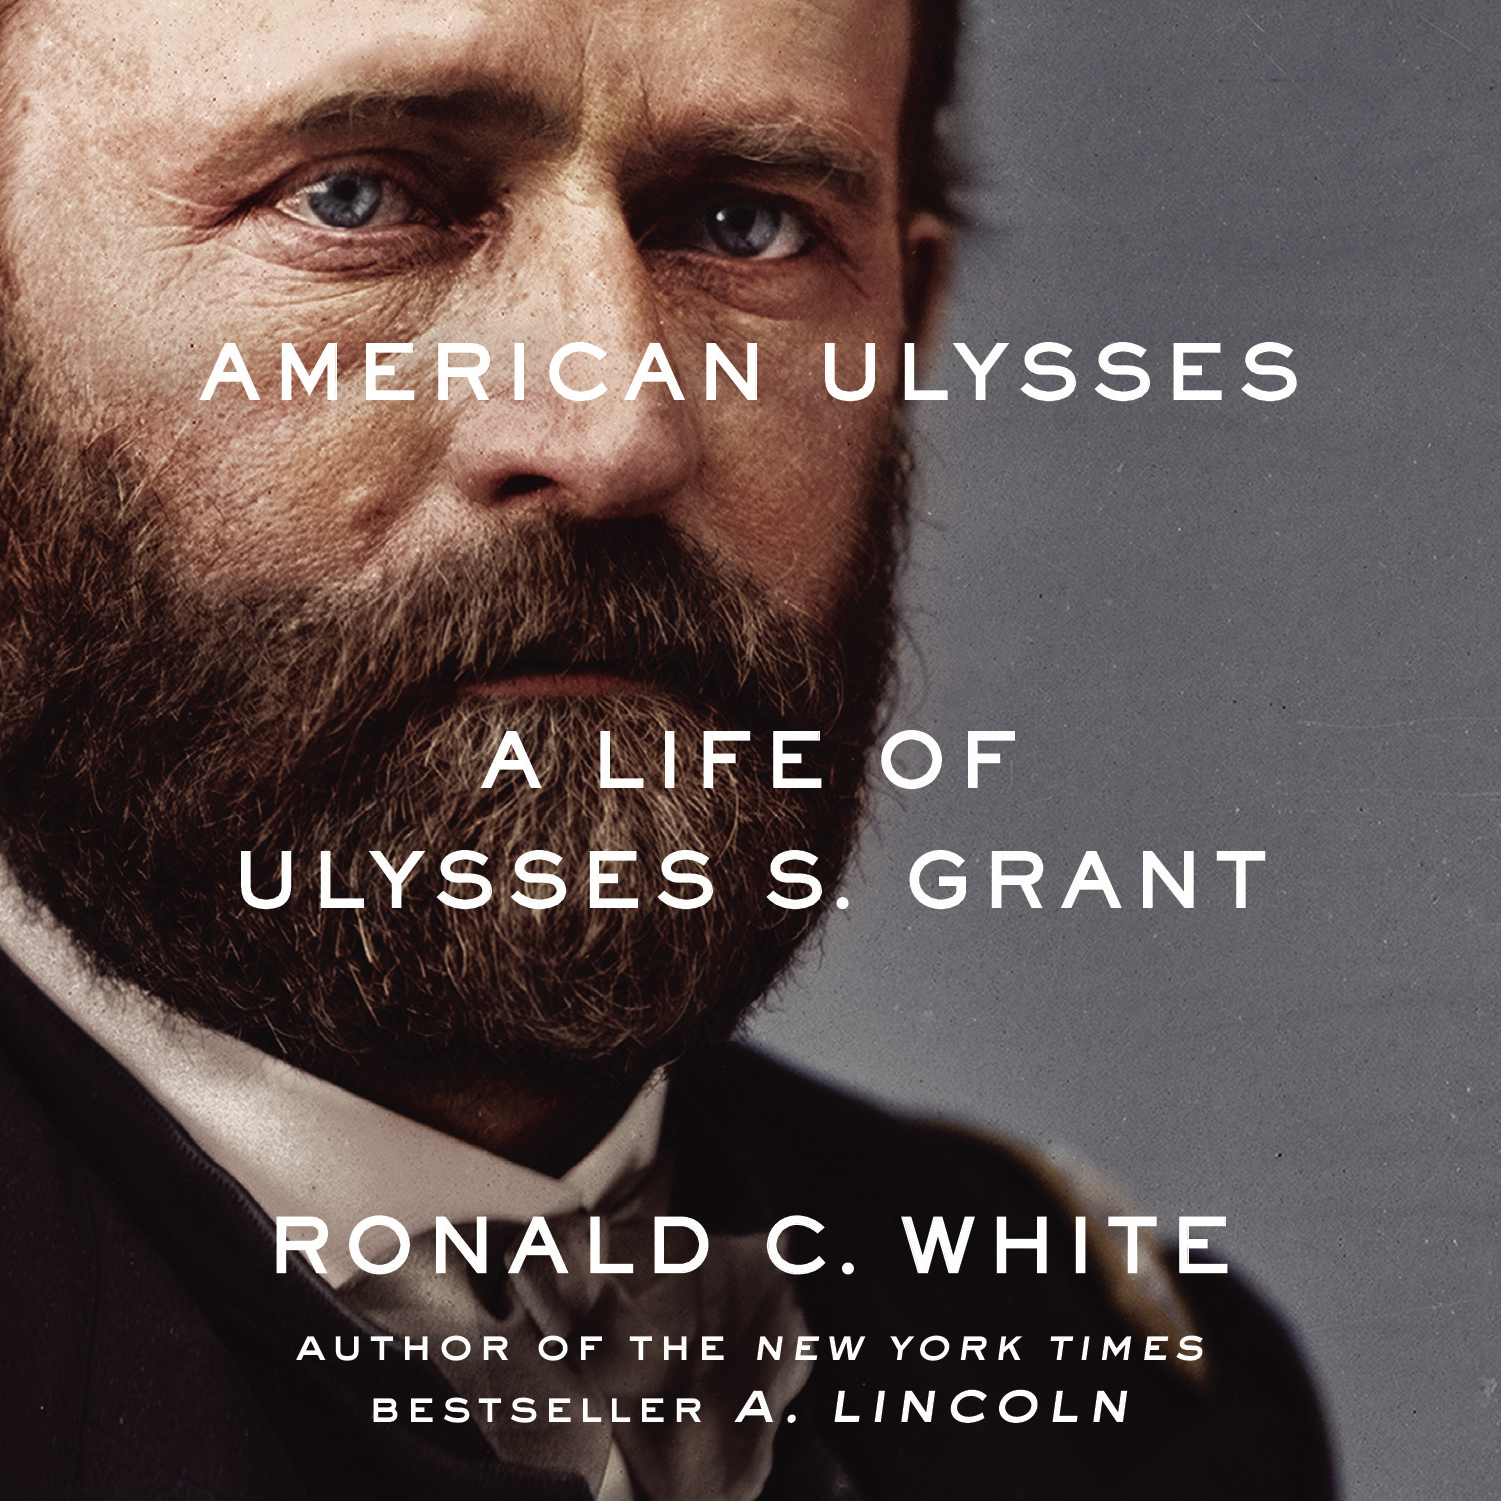 Printable American Ulysses: A Life of Ulysses S. Grant Audiobook Cover Art